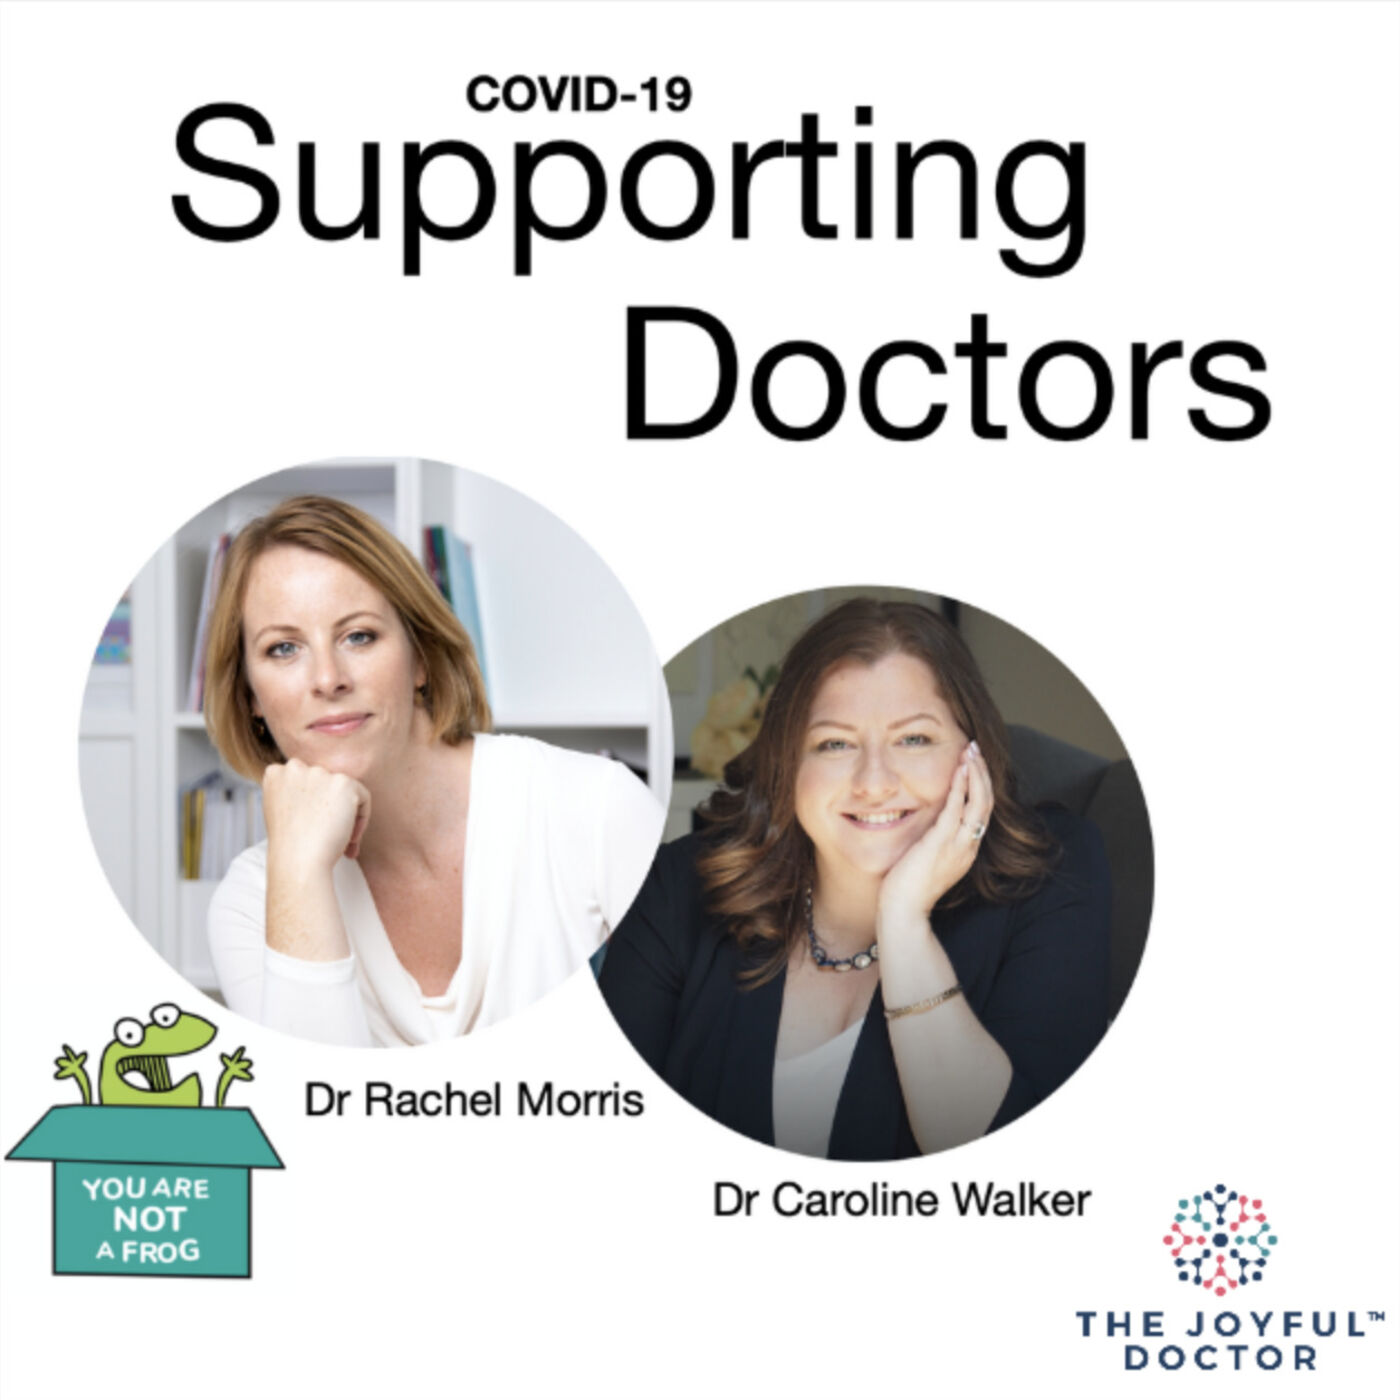 COVID-19 Supporting Doctors. COVID fatigue – what's going on, and what we can do about it